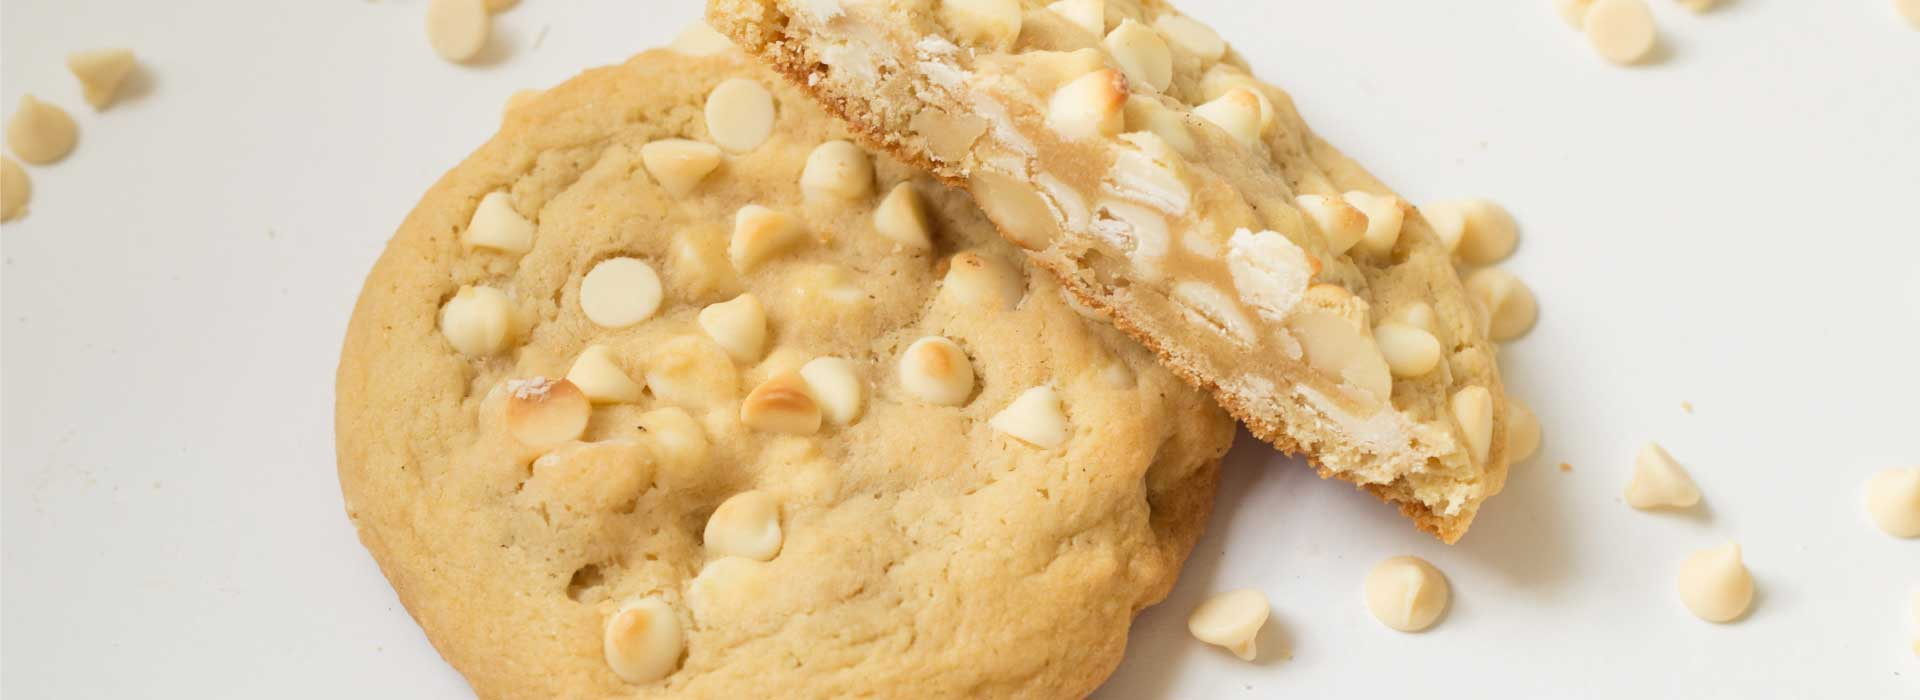 white chocolate macadamia cookies shipped